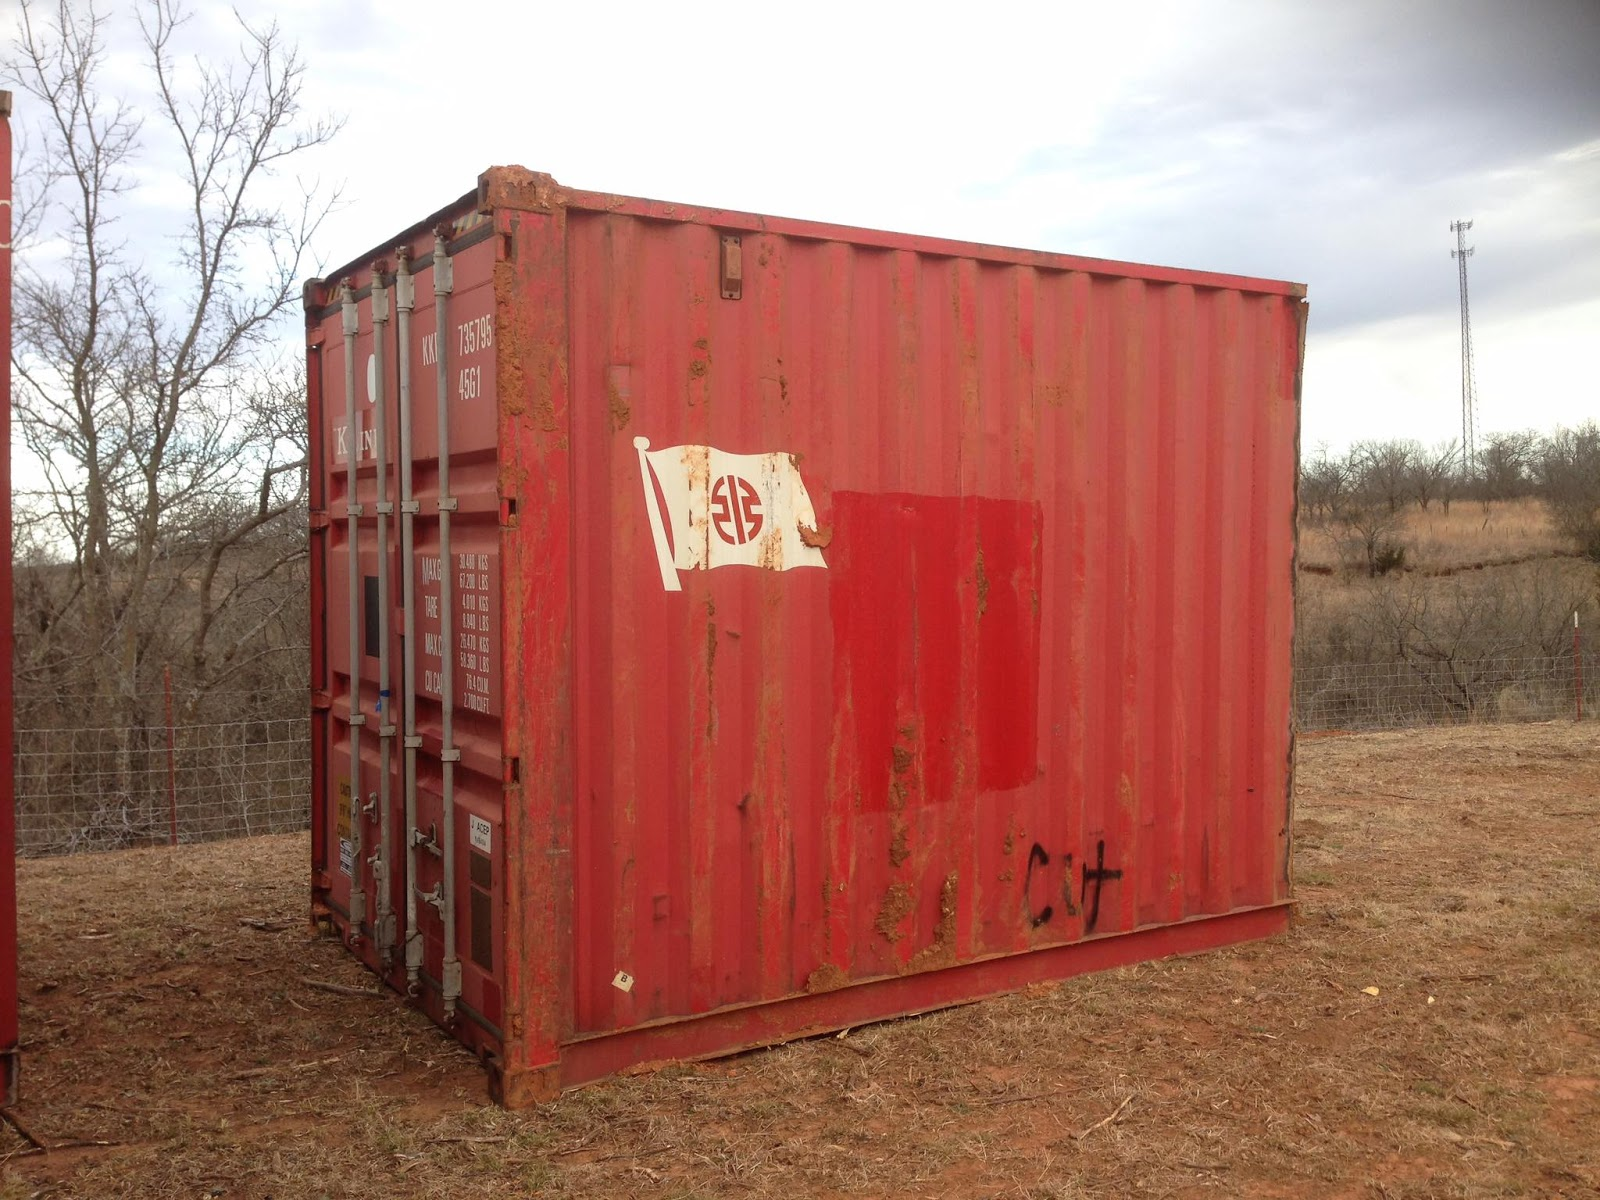 Red 20-foot shipping container cut in half